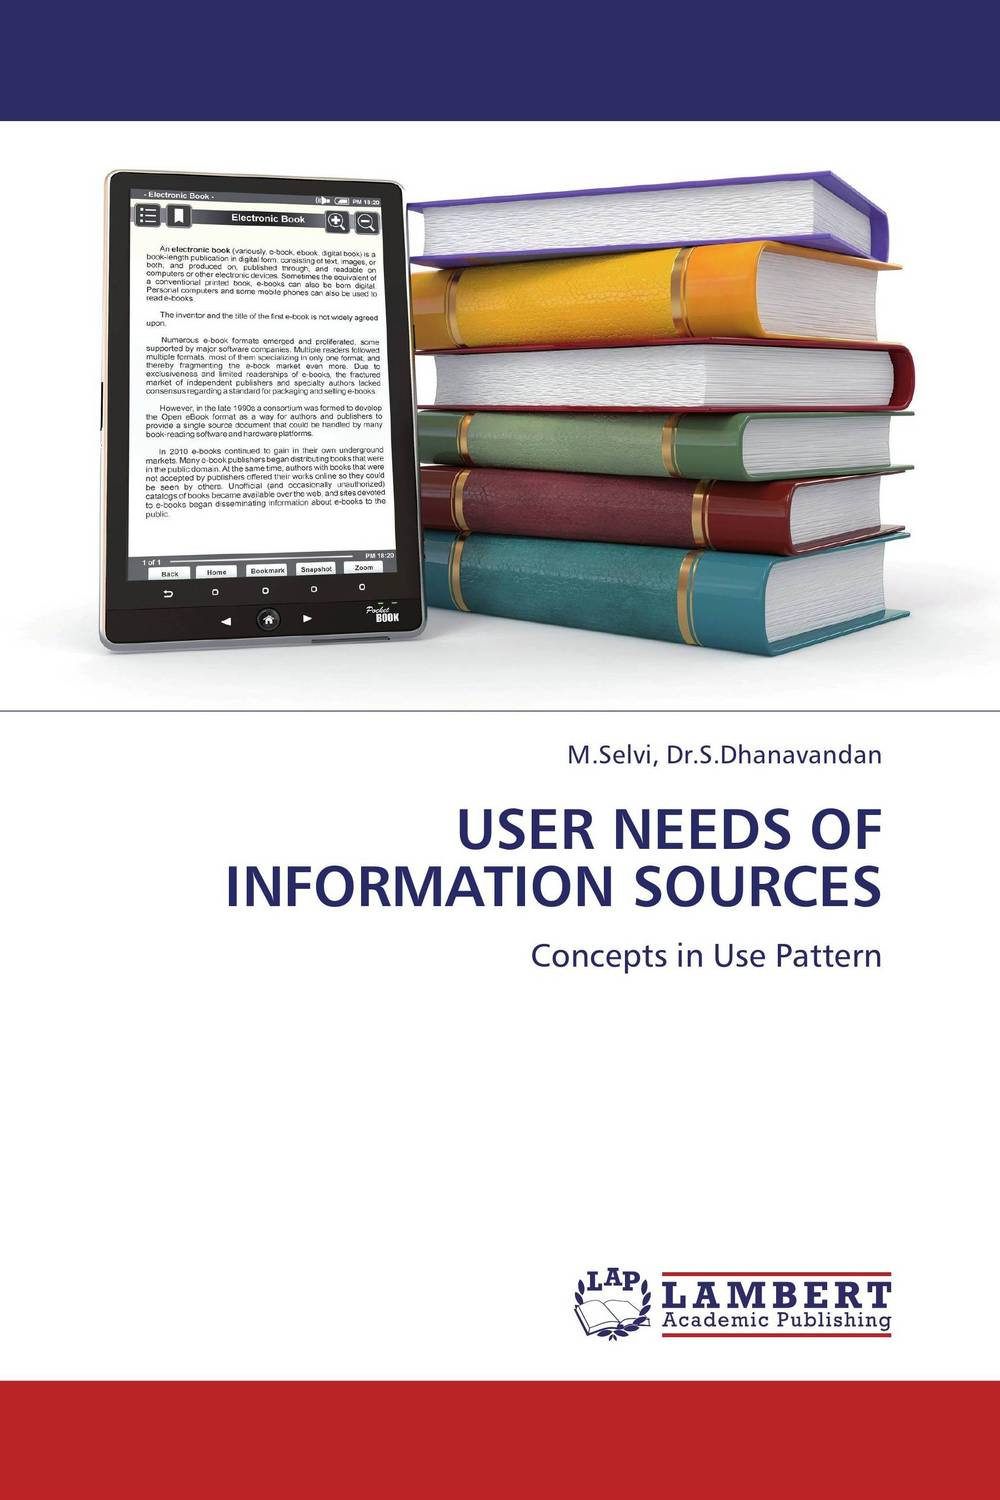 USER NEEDS OF INFORMATION SOURCES reducing end user burden in everyday data organization